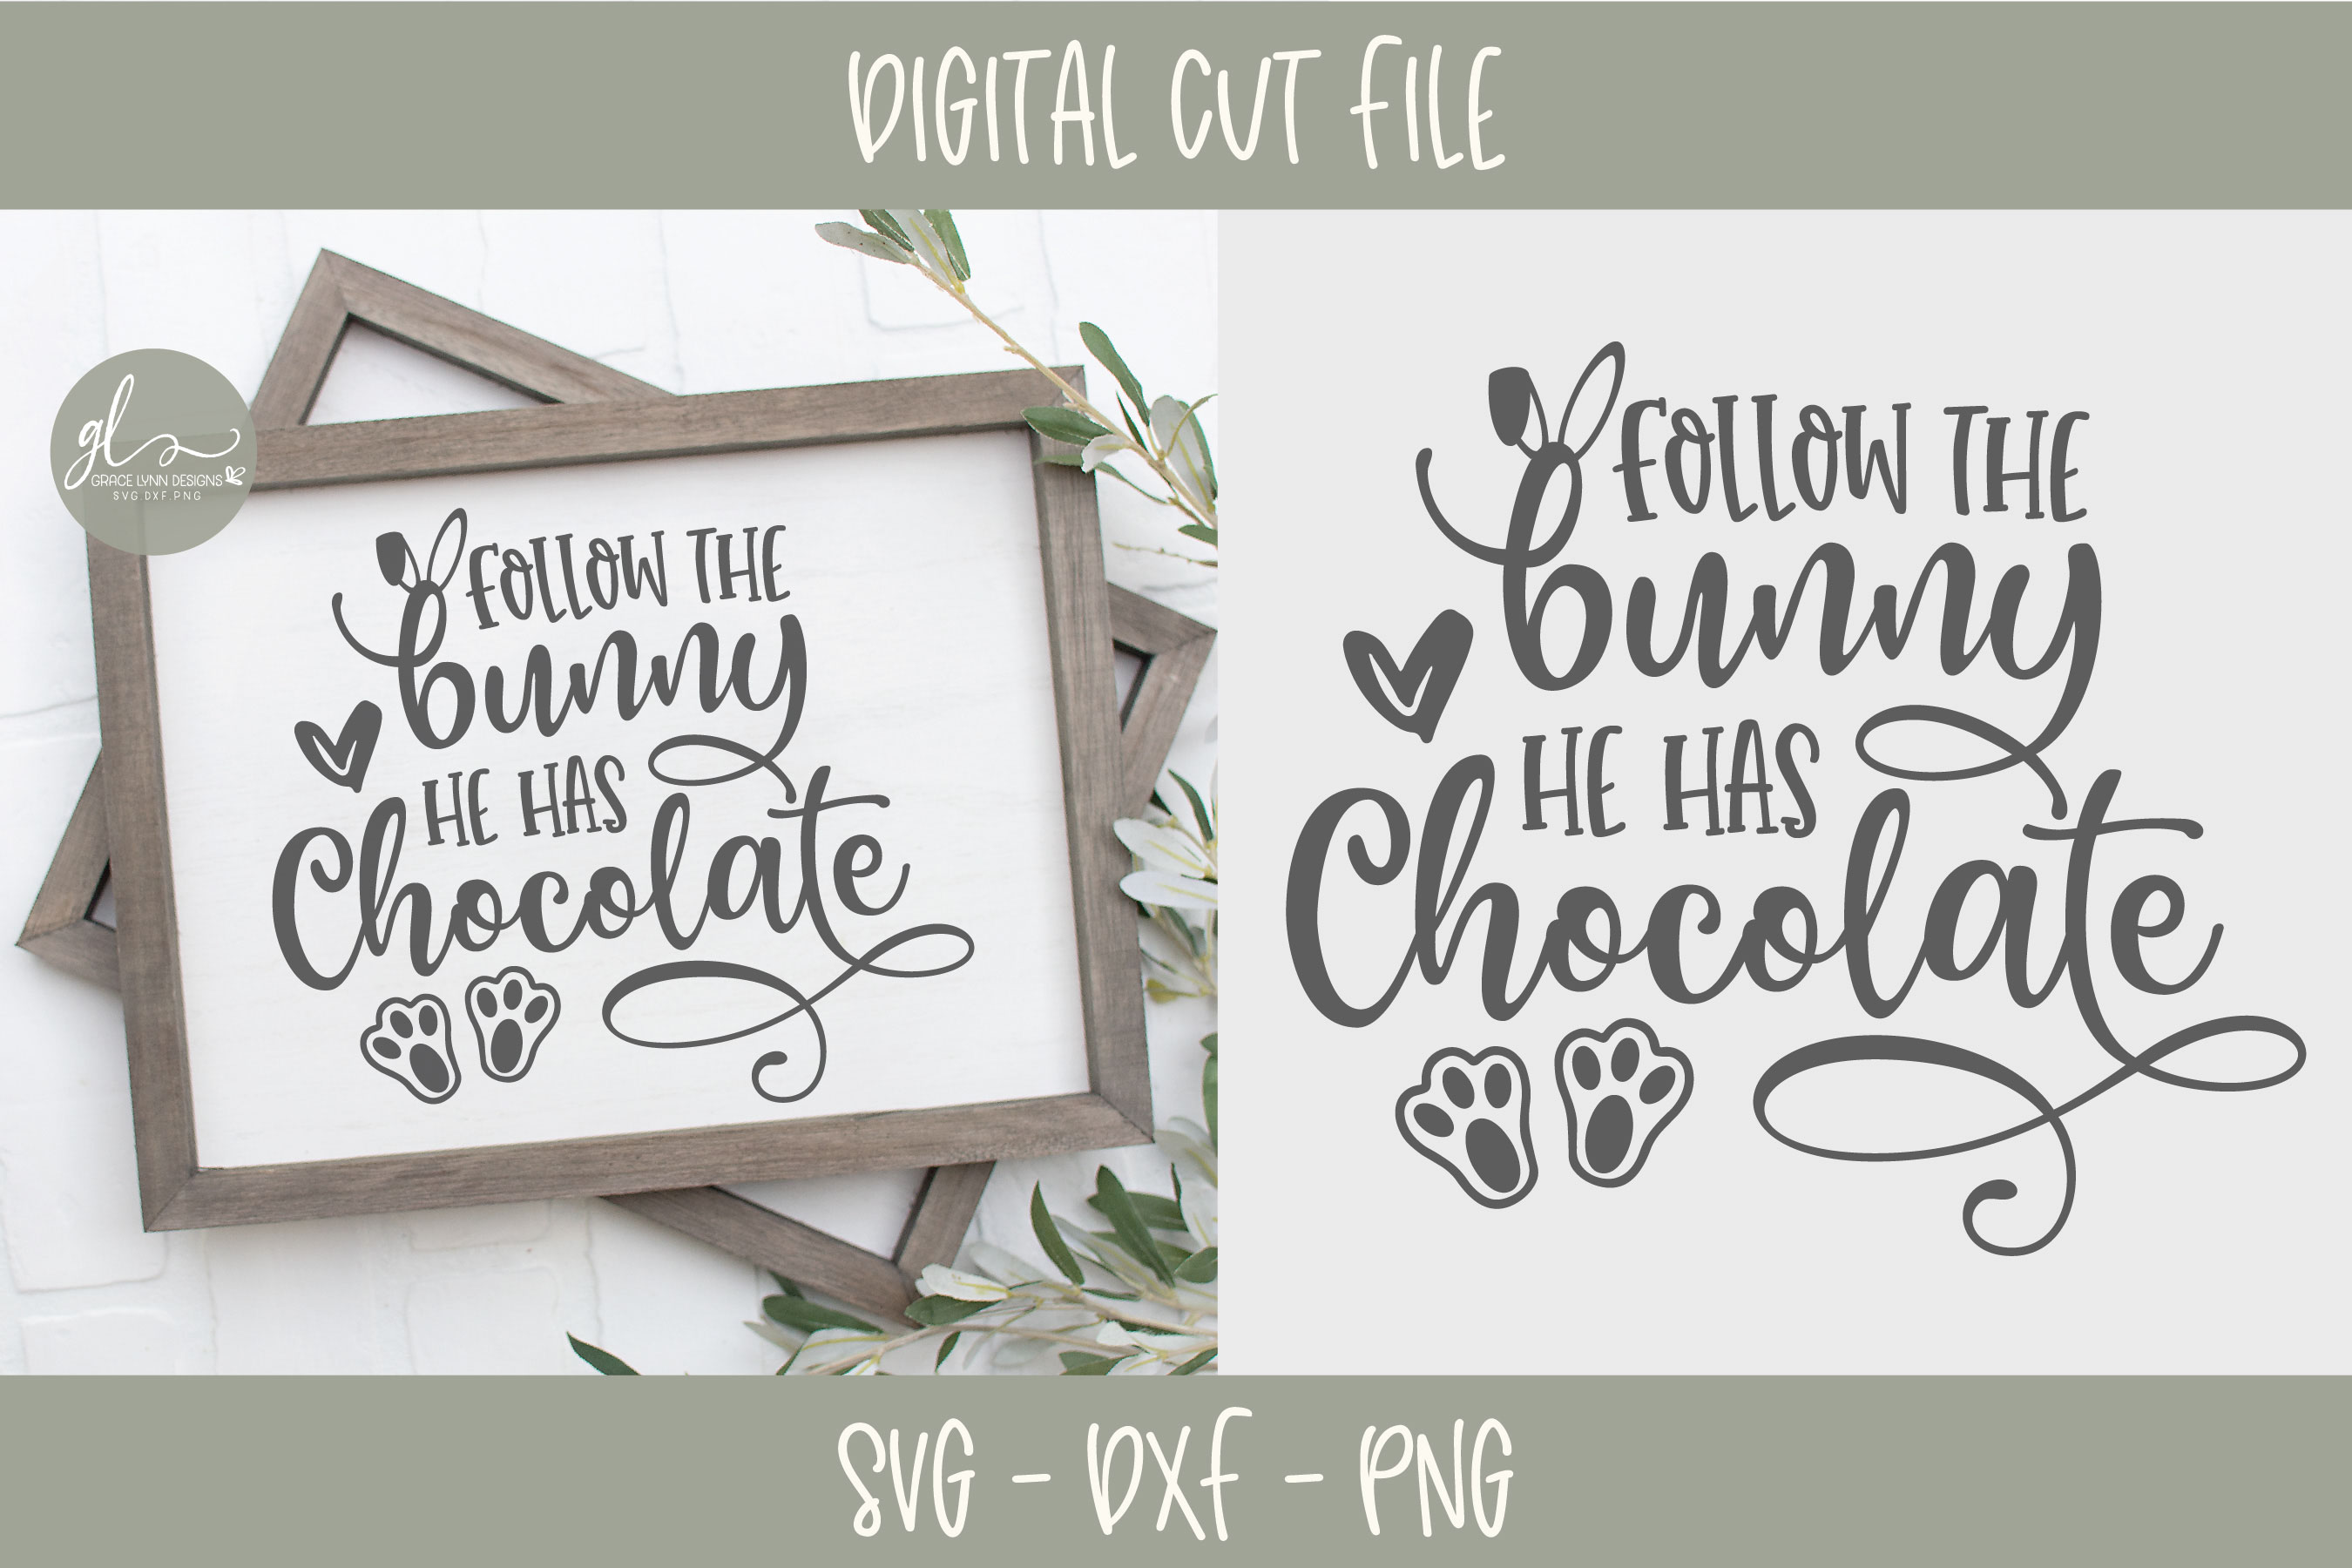 Follow The Bunny He Has Chocolate - Easter SVG Cut File example image 2